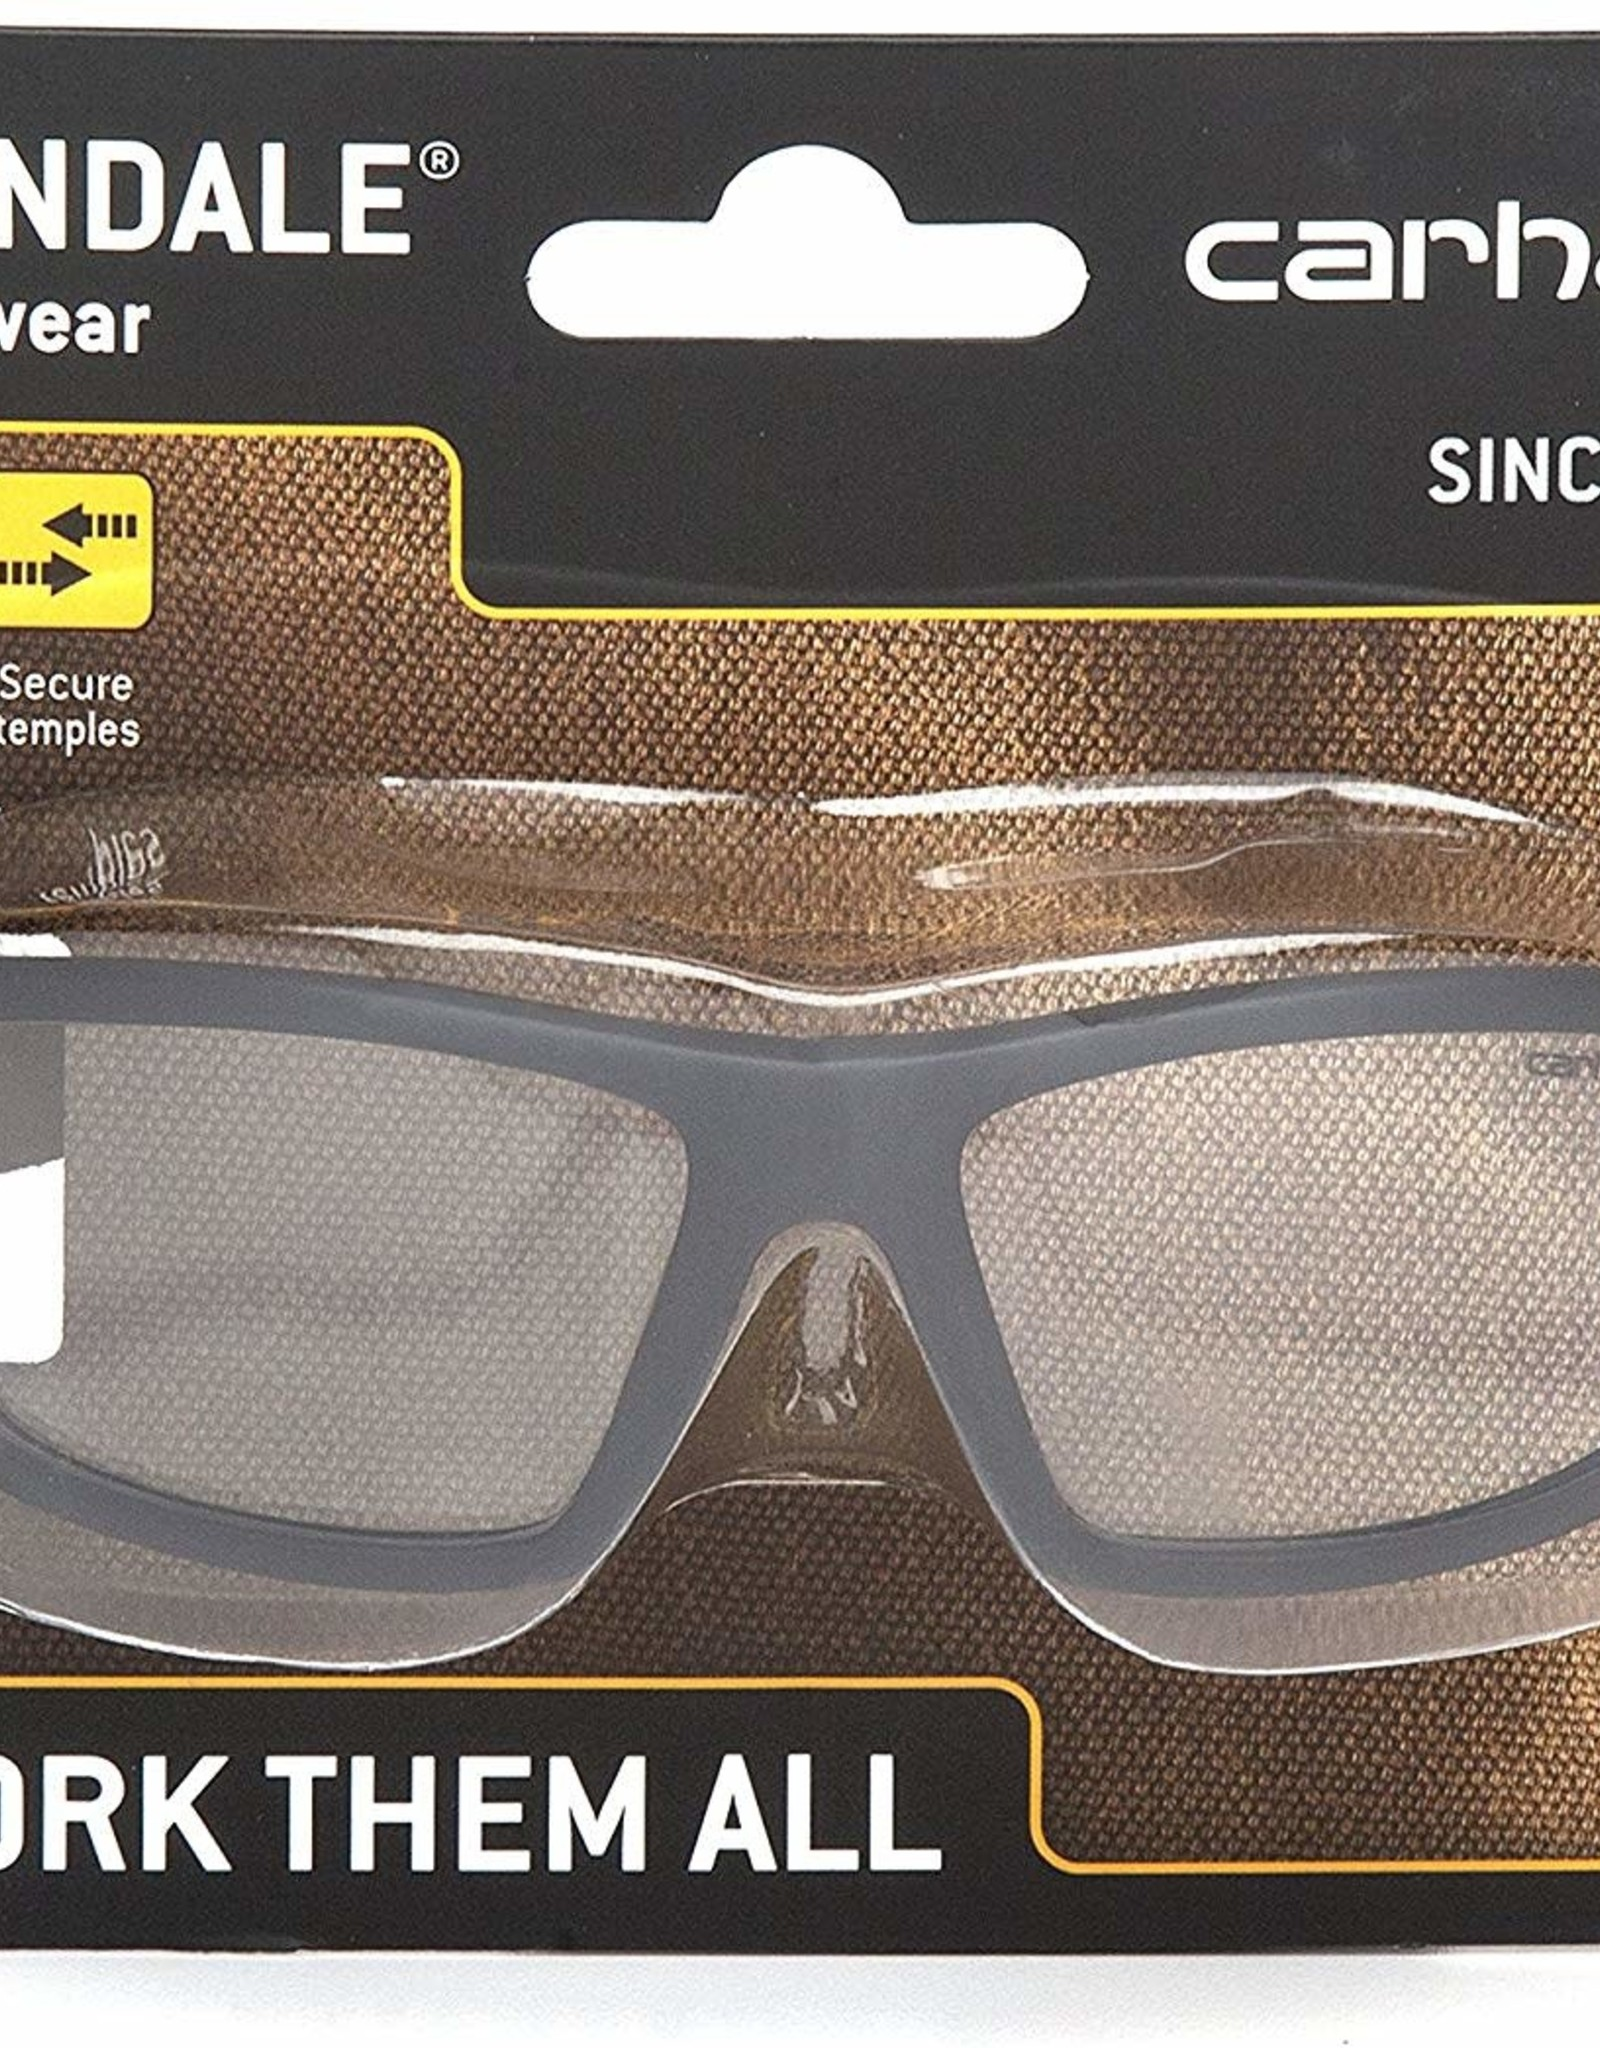 Carhartt Carhartt CHB210DCC Carbondale SAFETY Glasses, Black/Tan Frame, Clear Lens